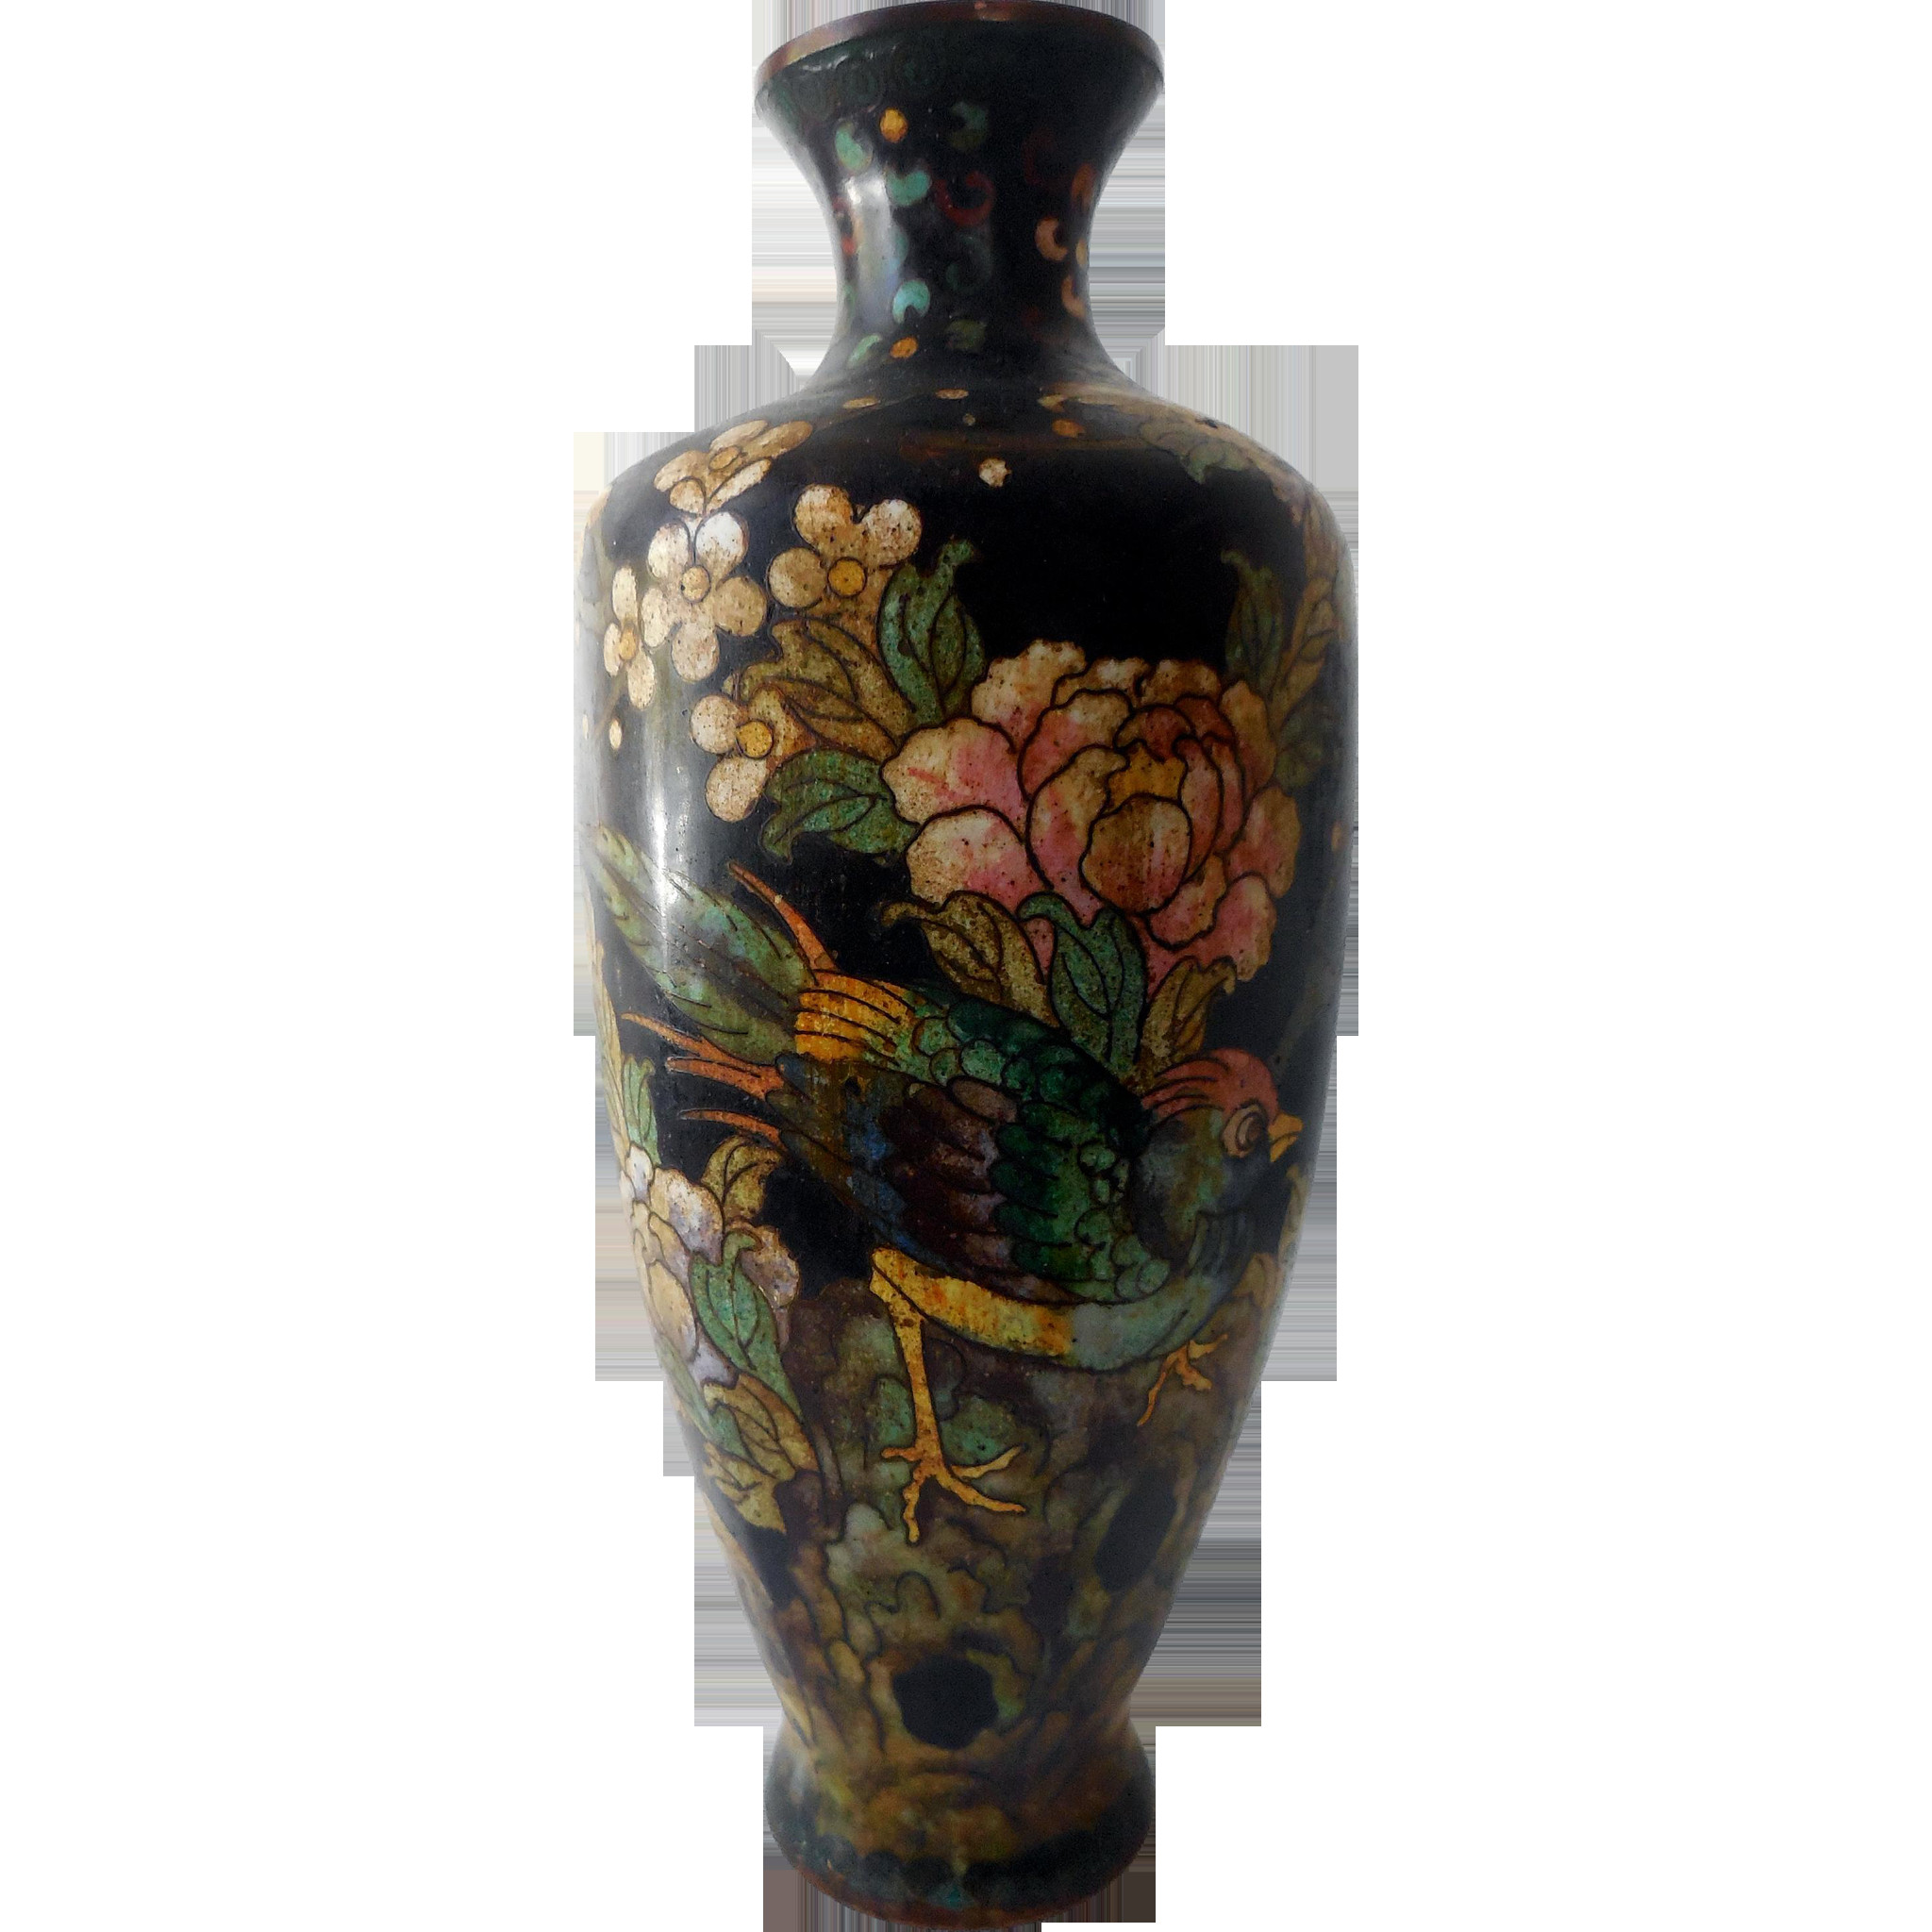 ming vase markings of antique chinese cloisonne vase 19th c great ming mark japanese in antique chinese cloisonne vase 19th c great ming mark